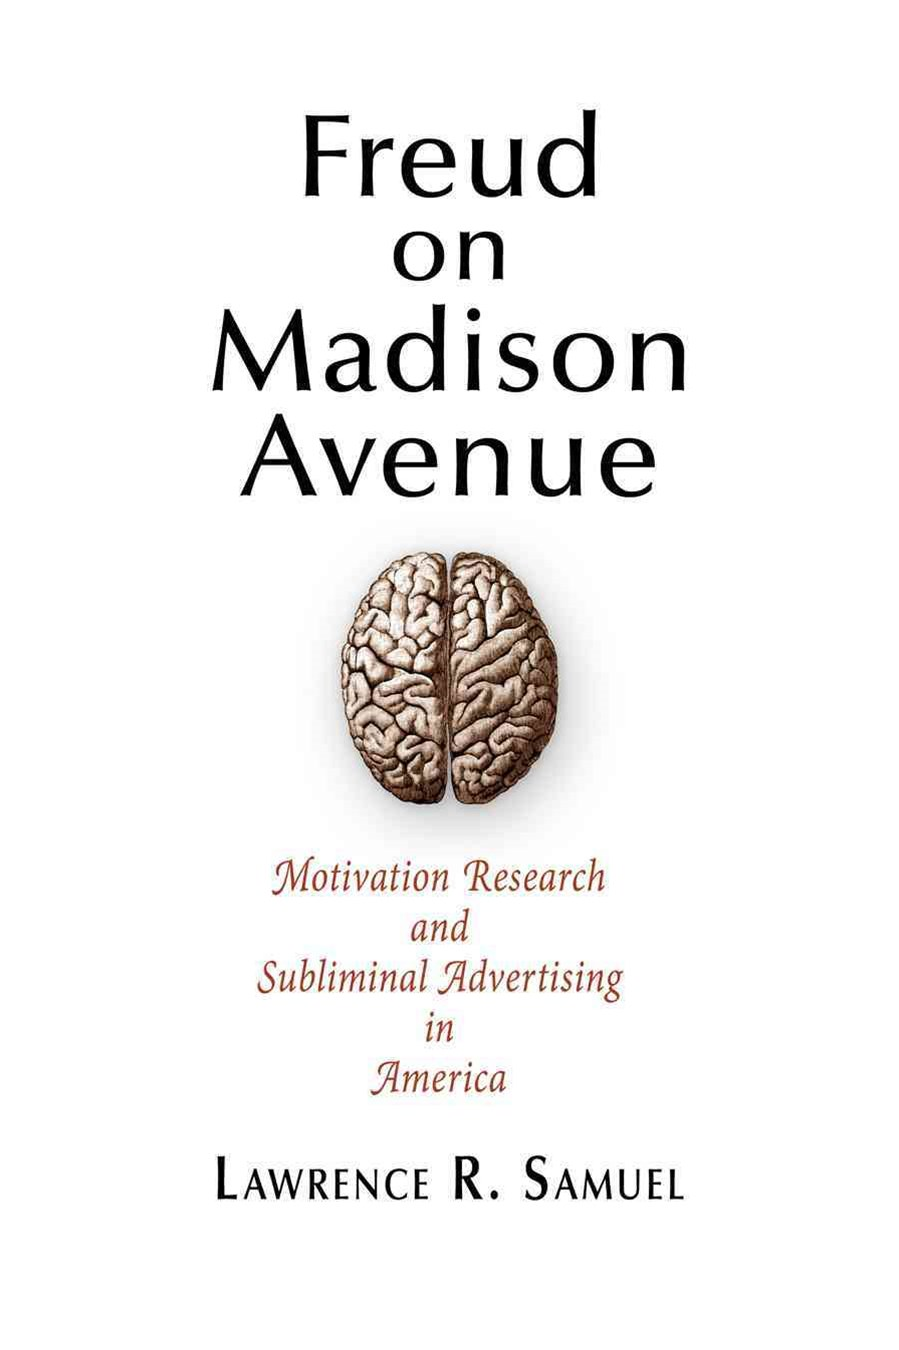 Freud on Madison Avenue